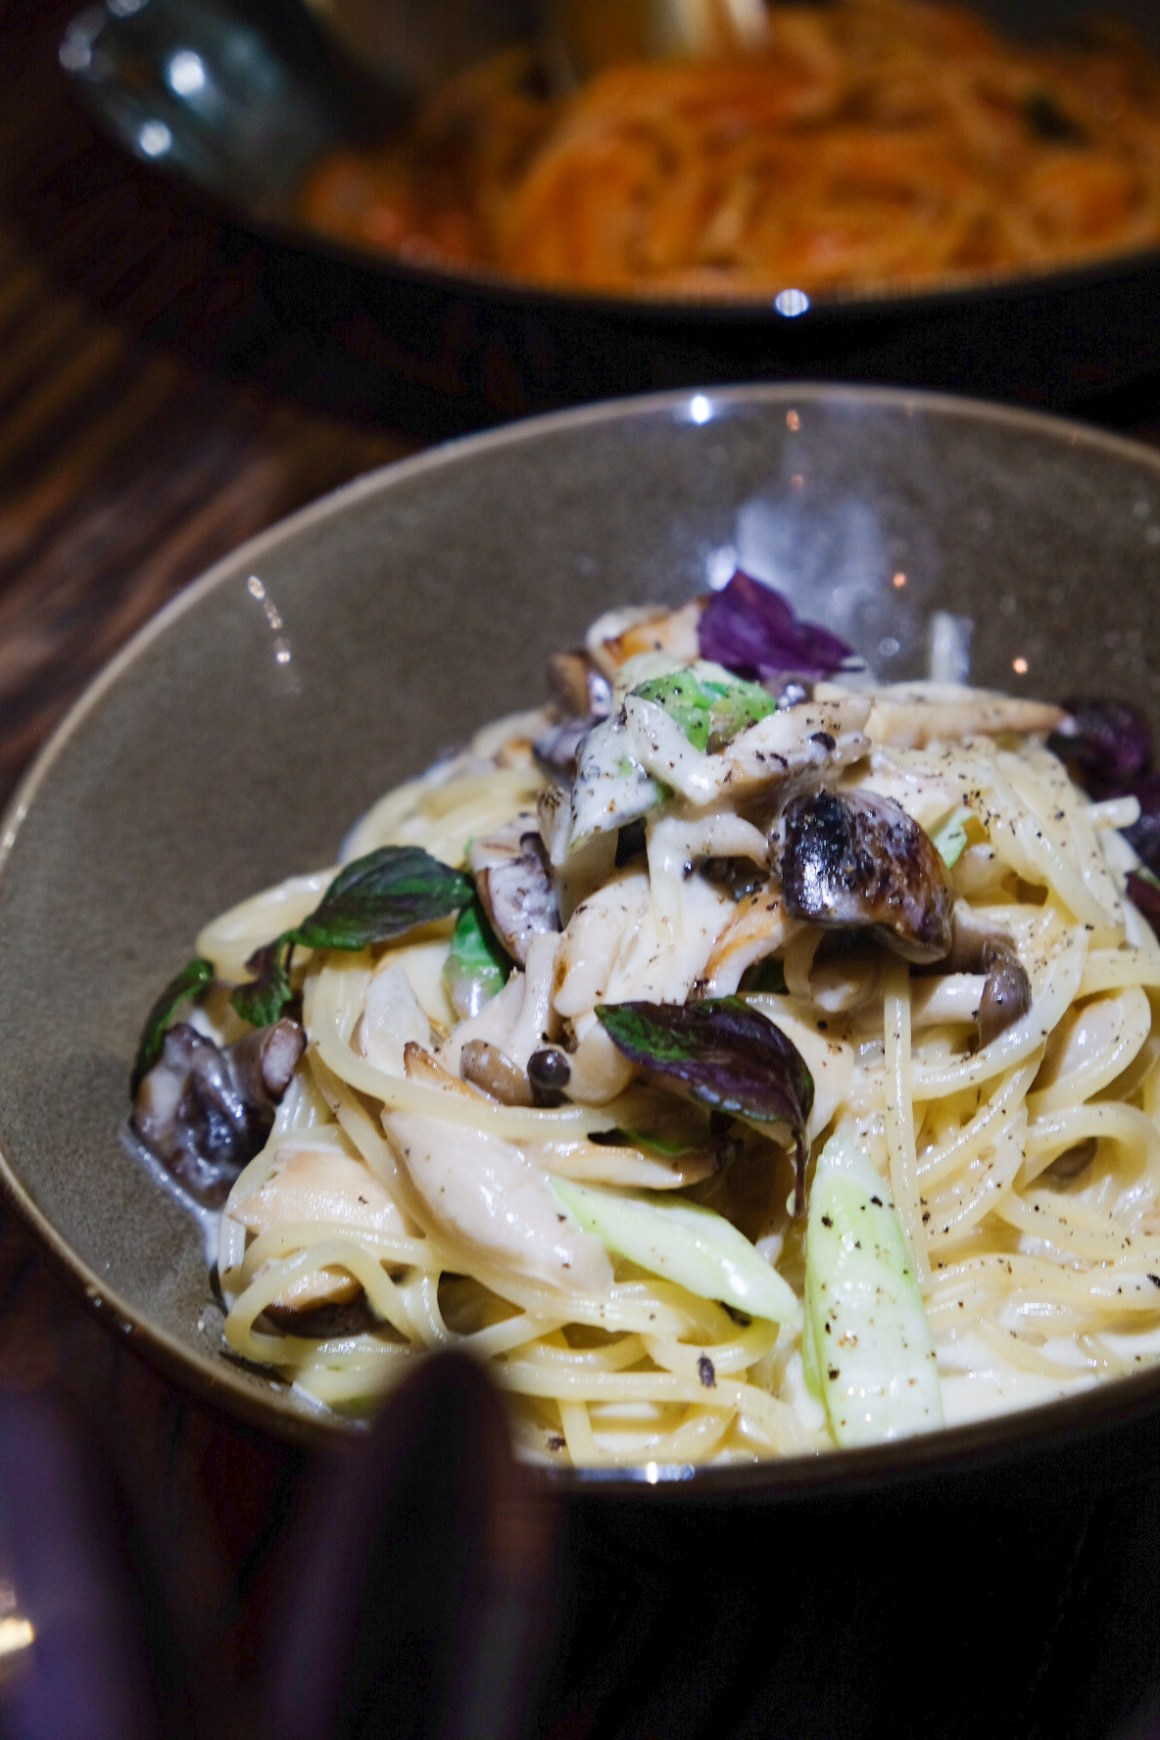 Farmers And Chefs Serving Hearty Wholesome Food - Truffle Mushroom Cream ($14)